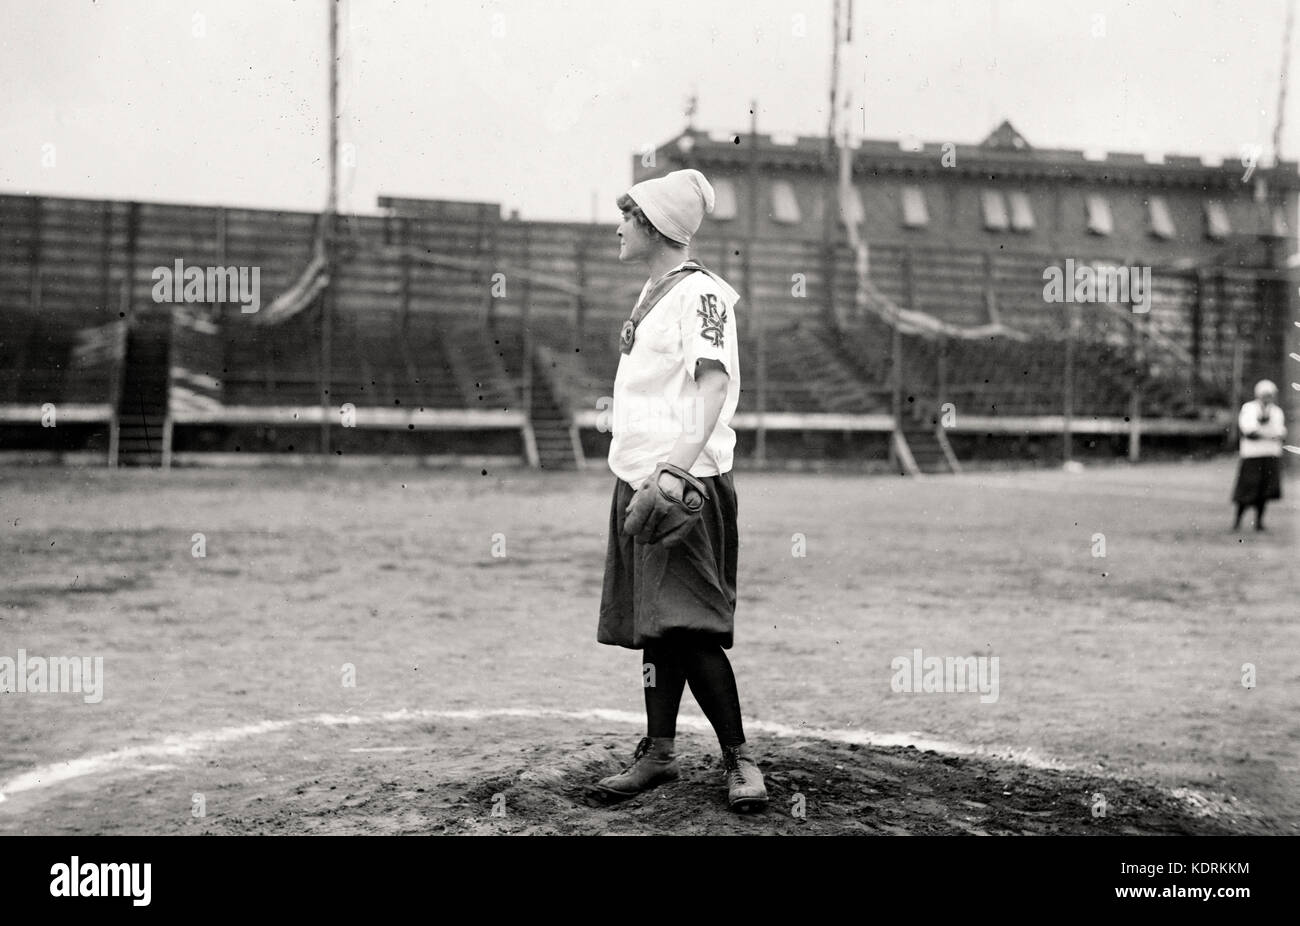 New York Giants femmina lanciatore di baseball circa 1913 Immagini Stock